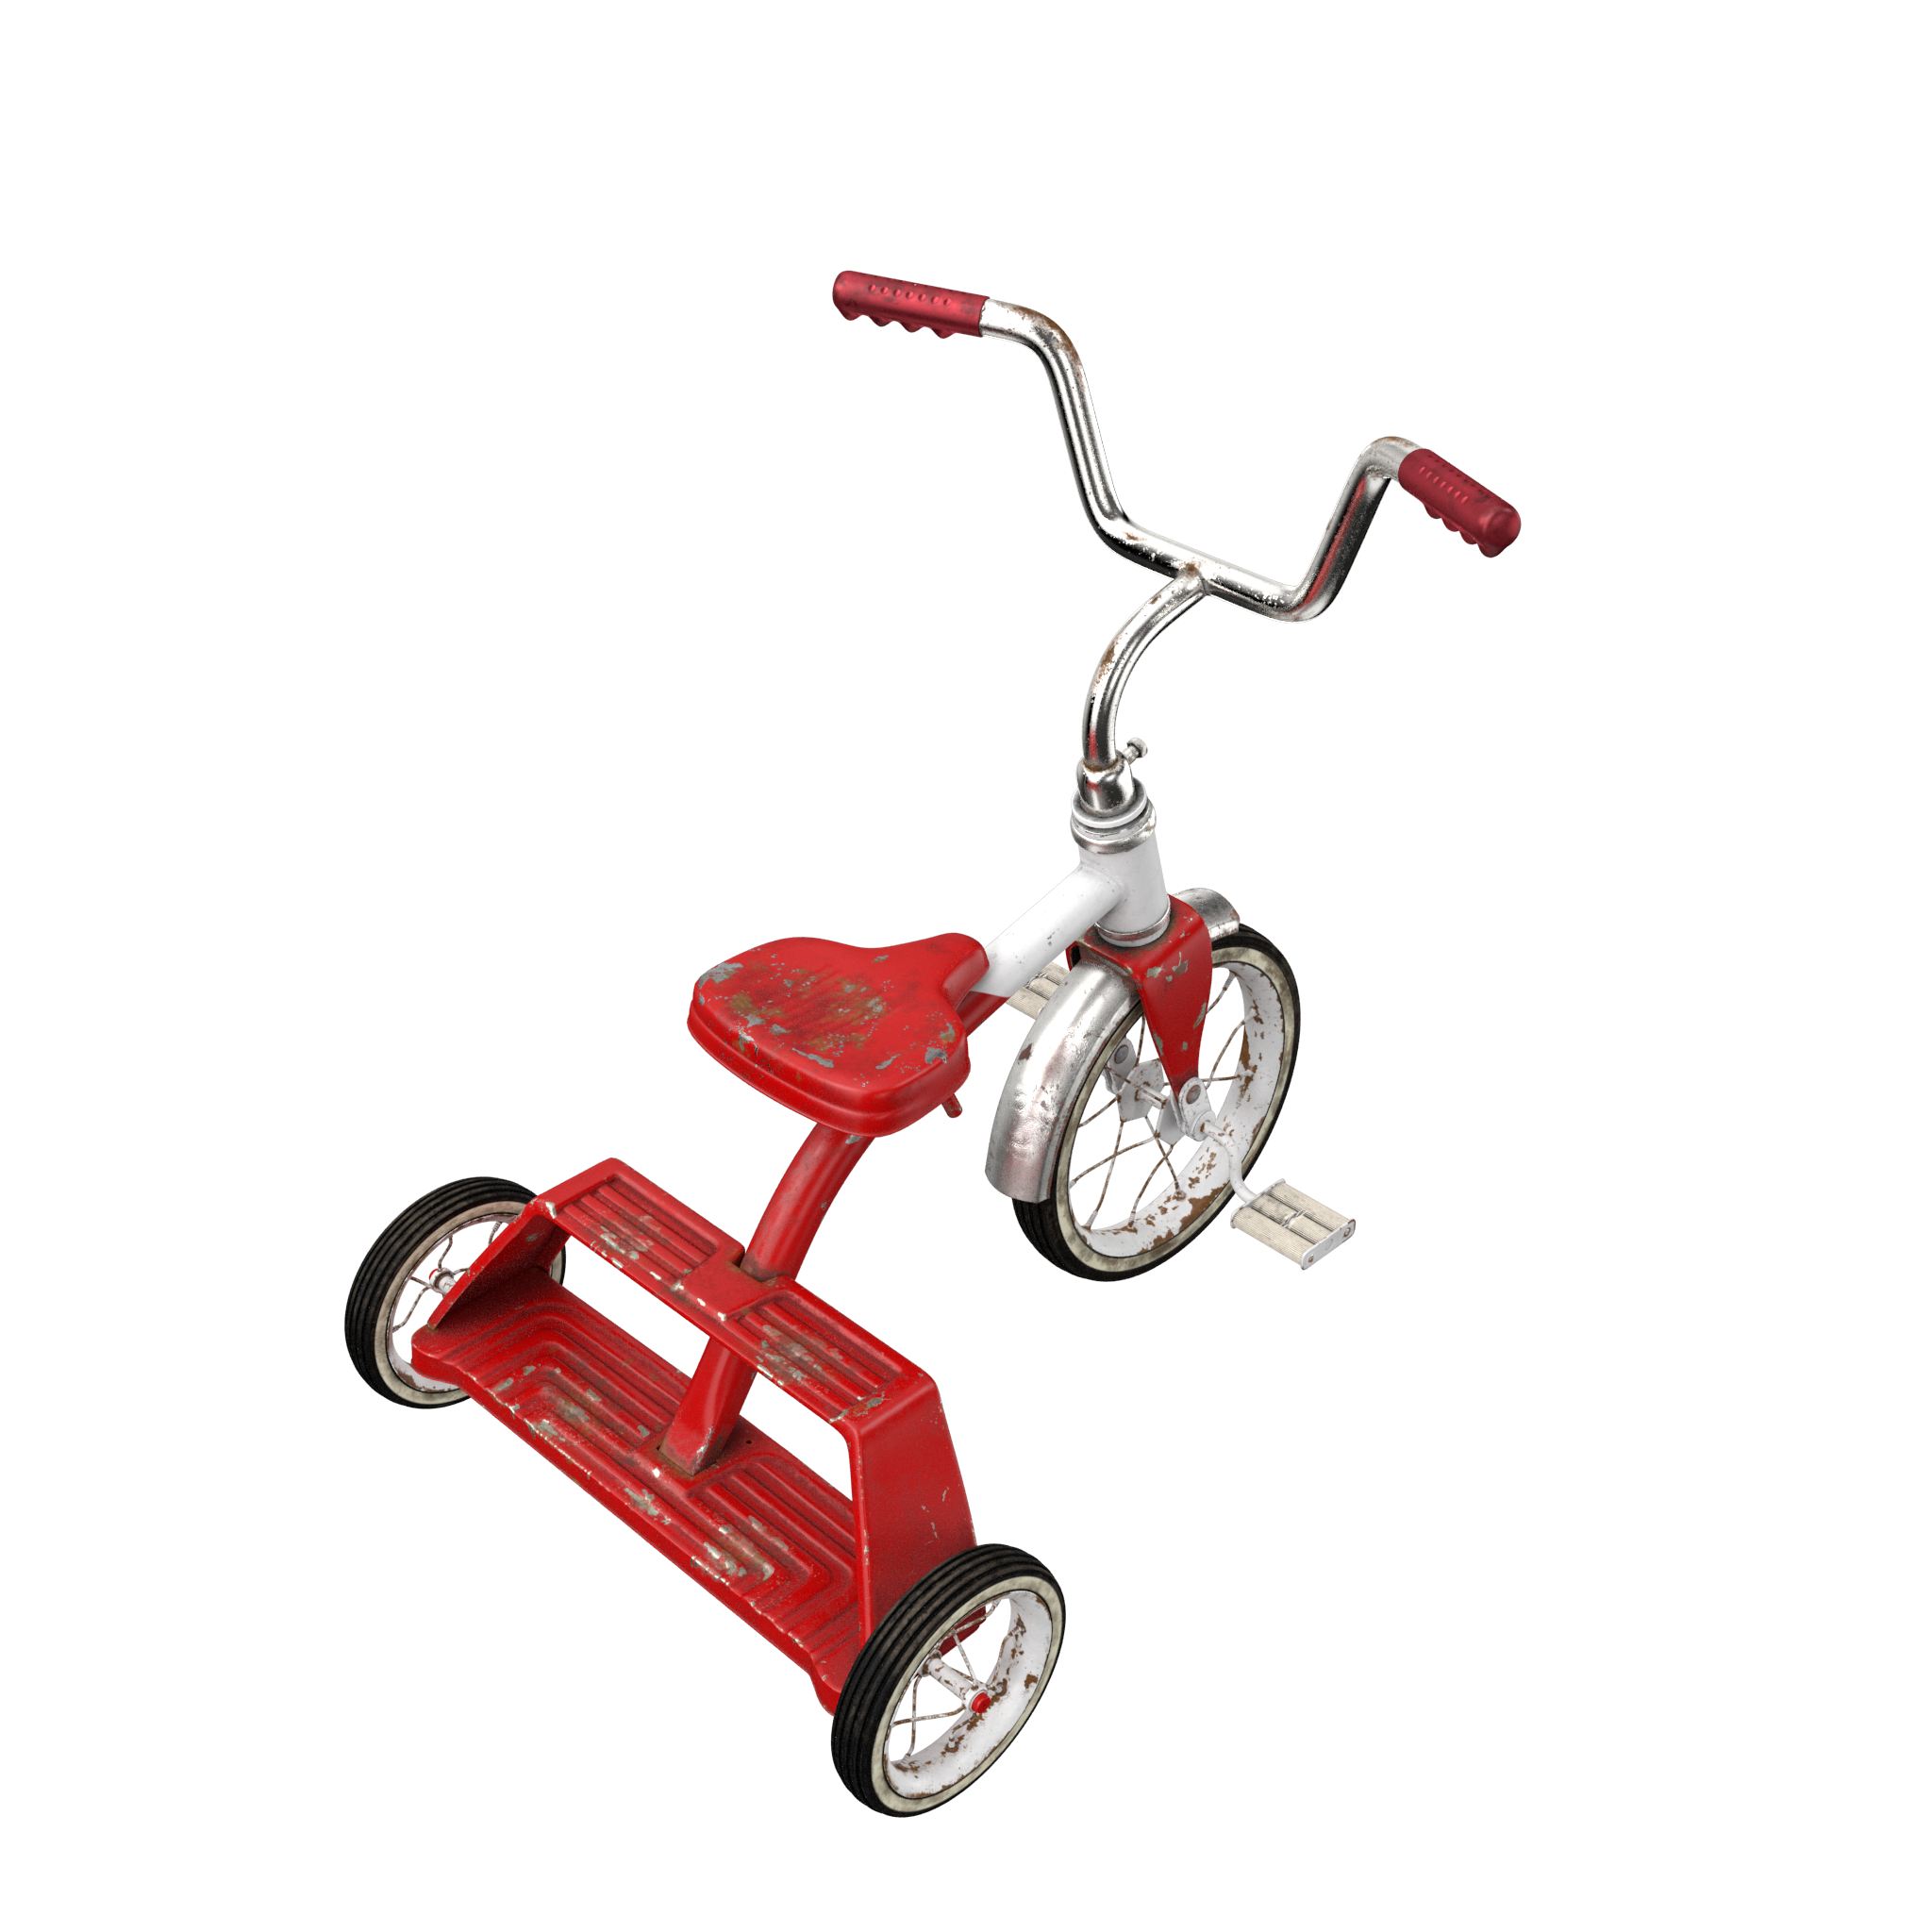 Dirty Vintage Tricycle PNG Image